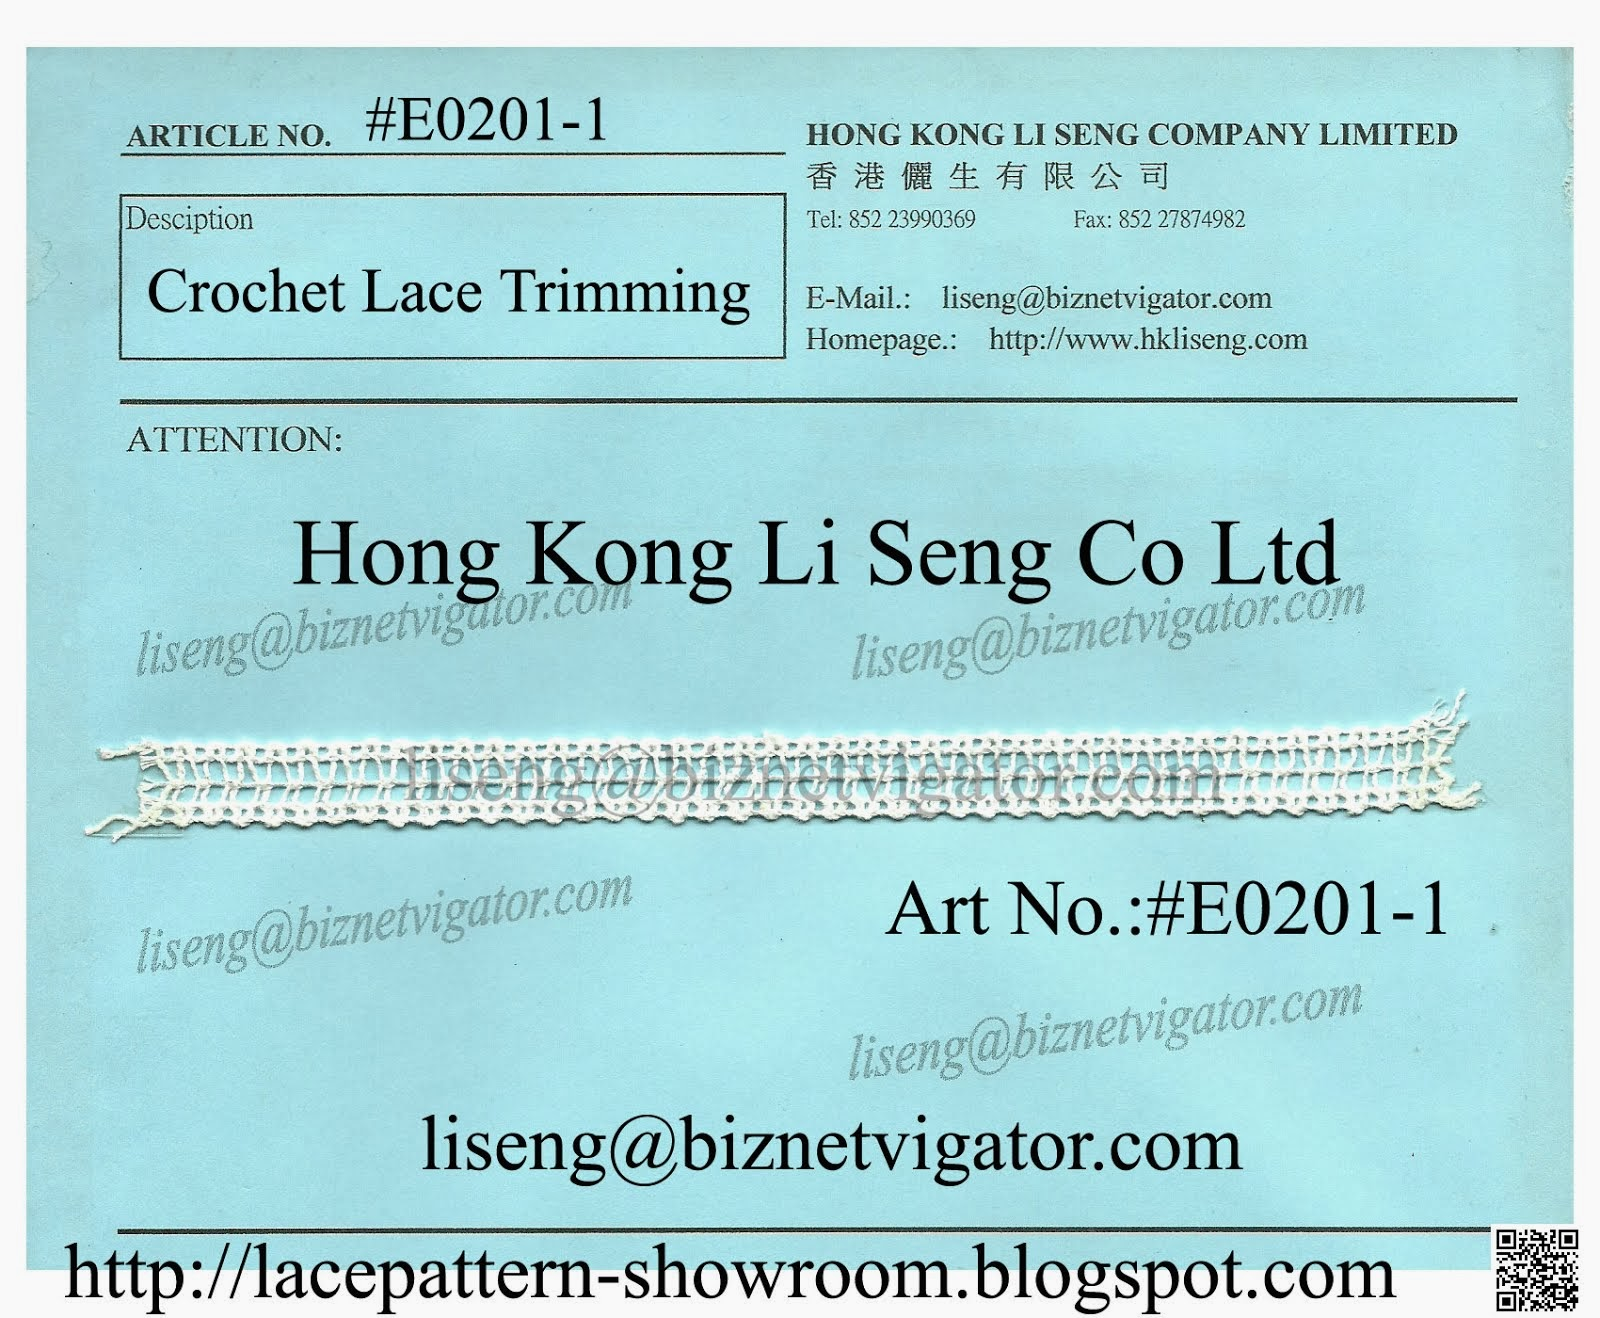 Lace Pattern Free - Crochet Lace Manufacturer - Hong Kong Li Seng Co Ltd